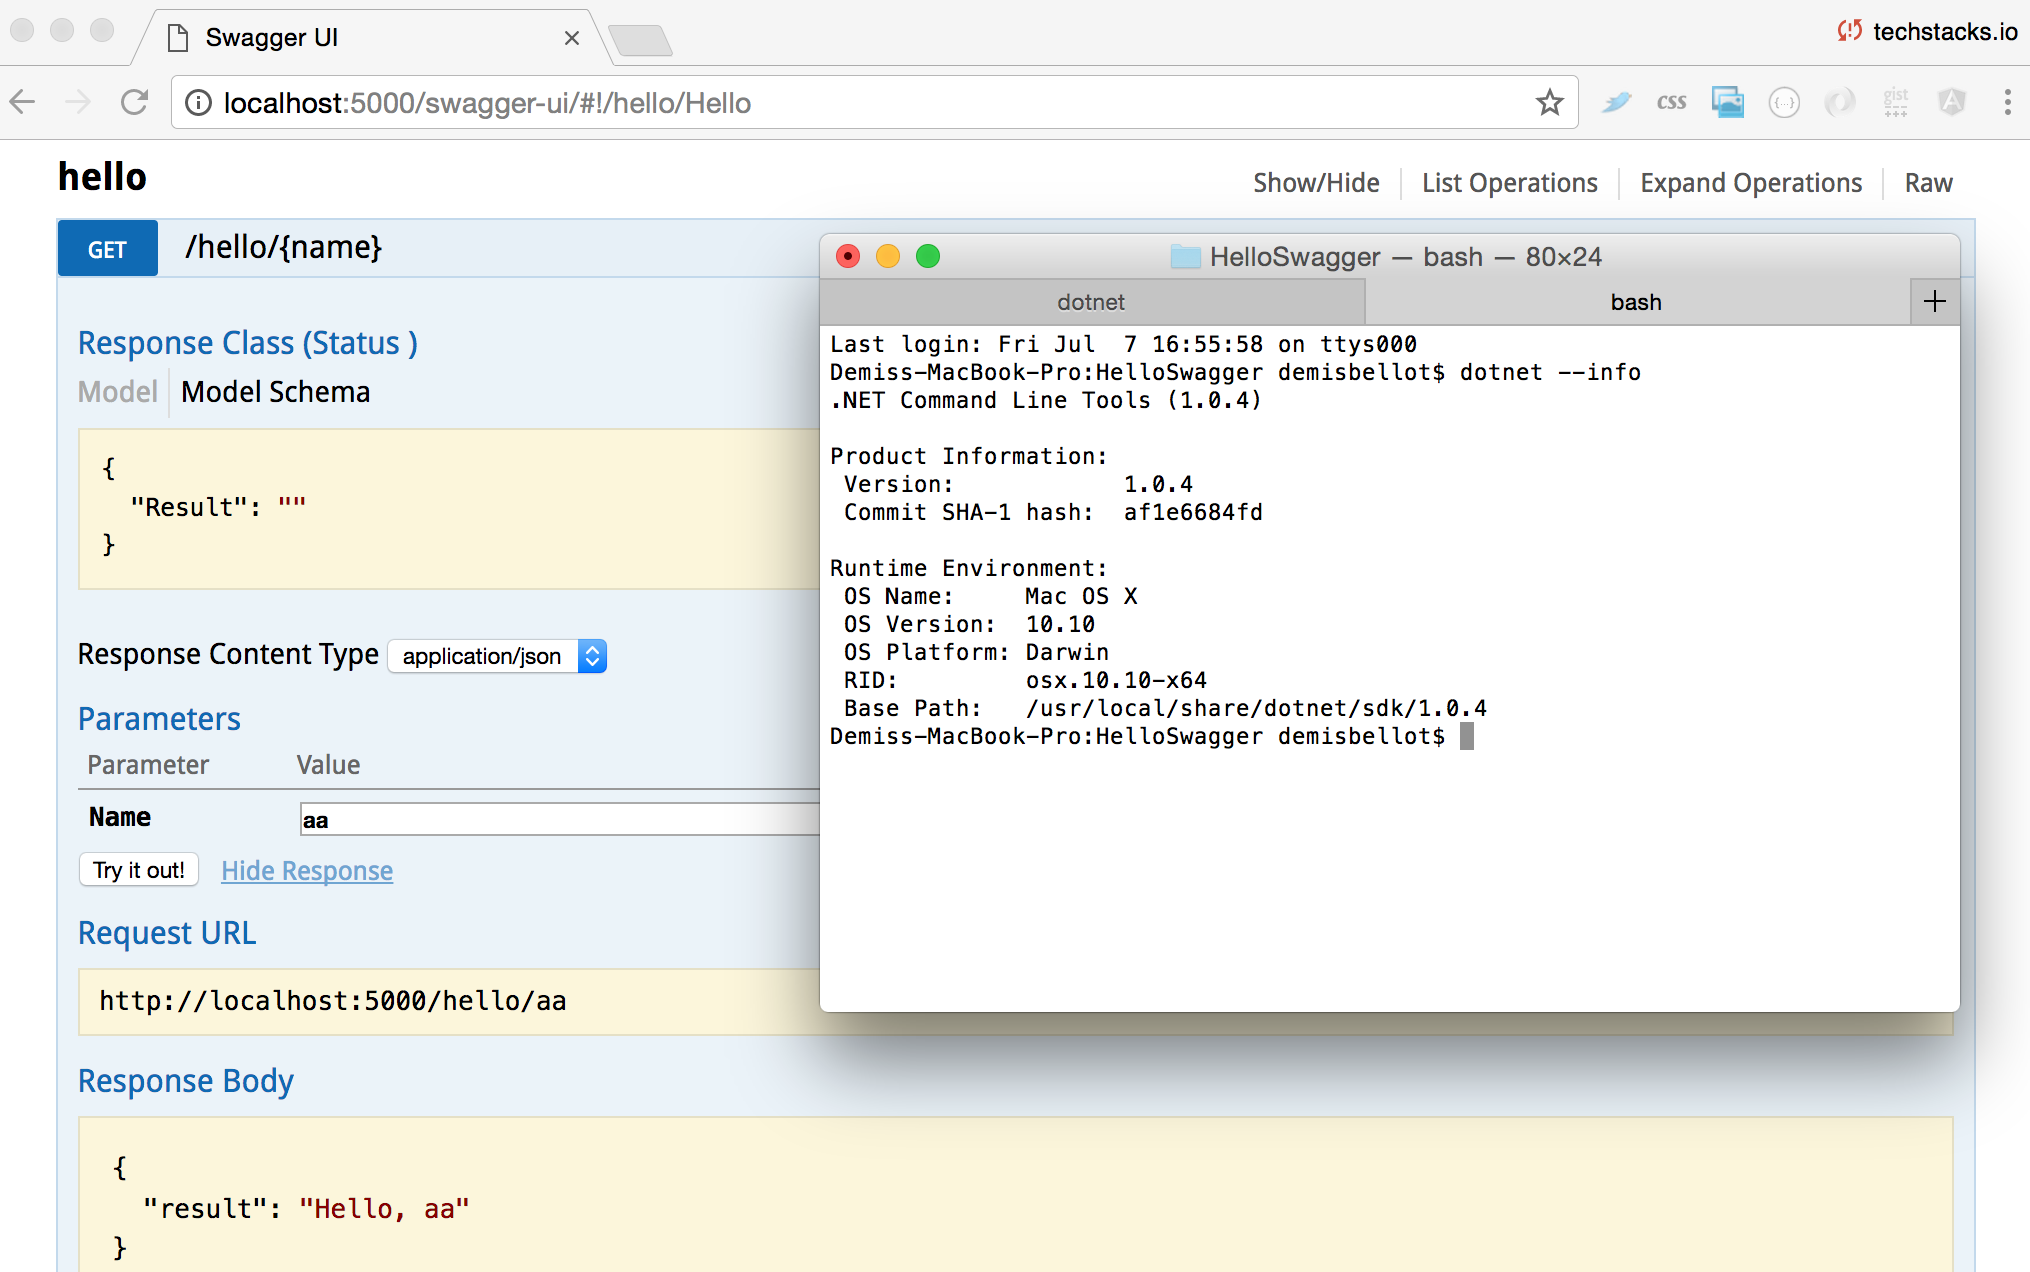 Default swagger UI to current instance - Swagger